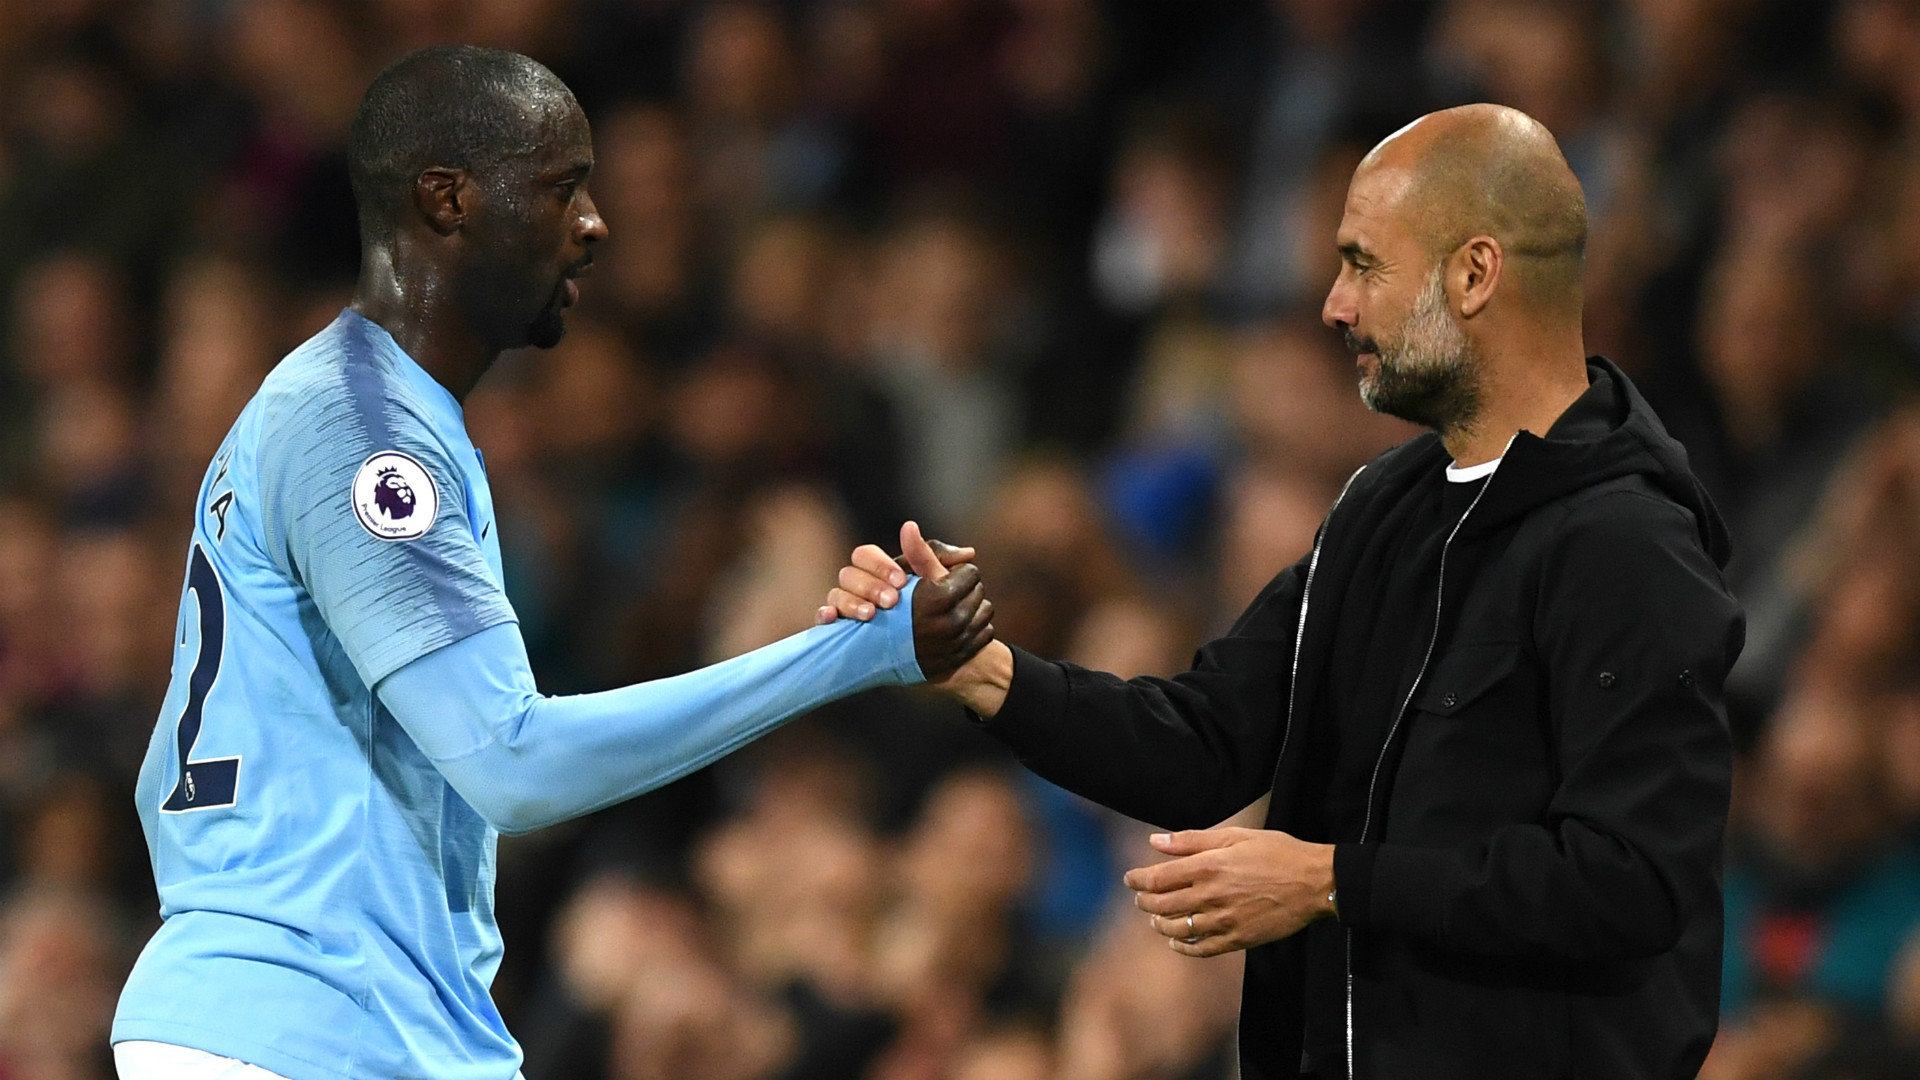 Guardiola does not like African players - Yaya Toure